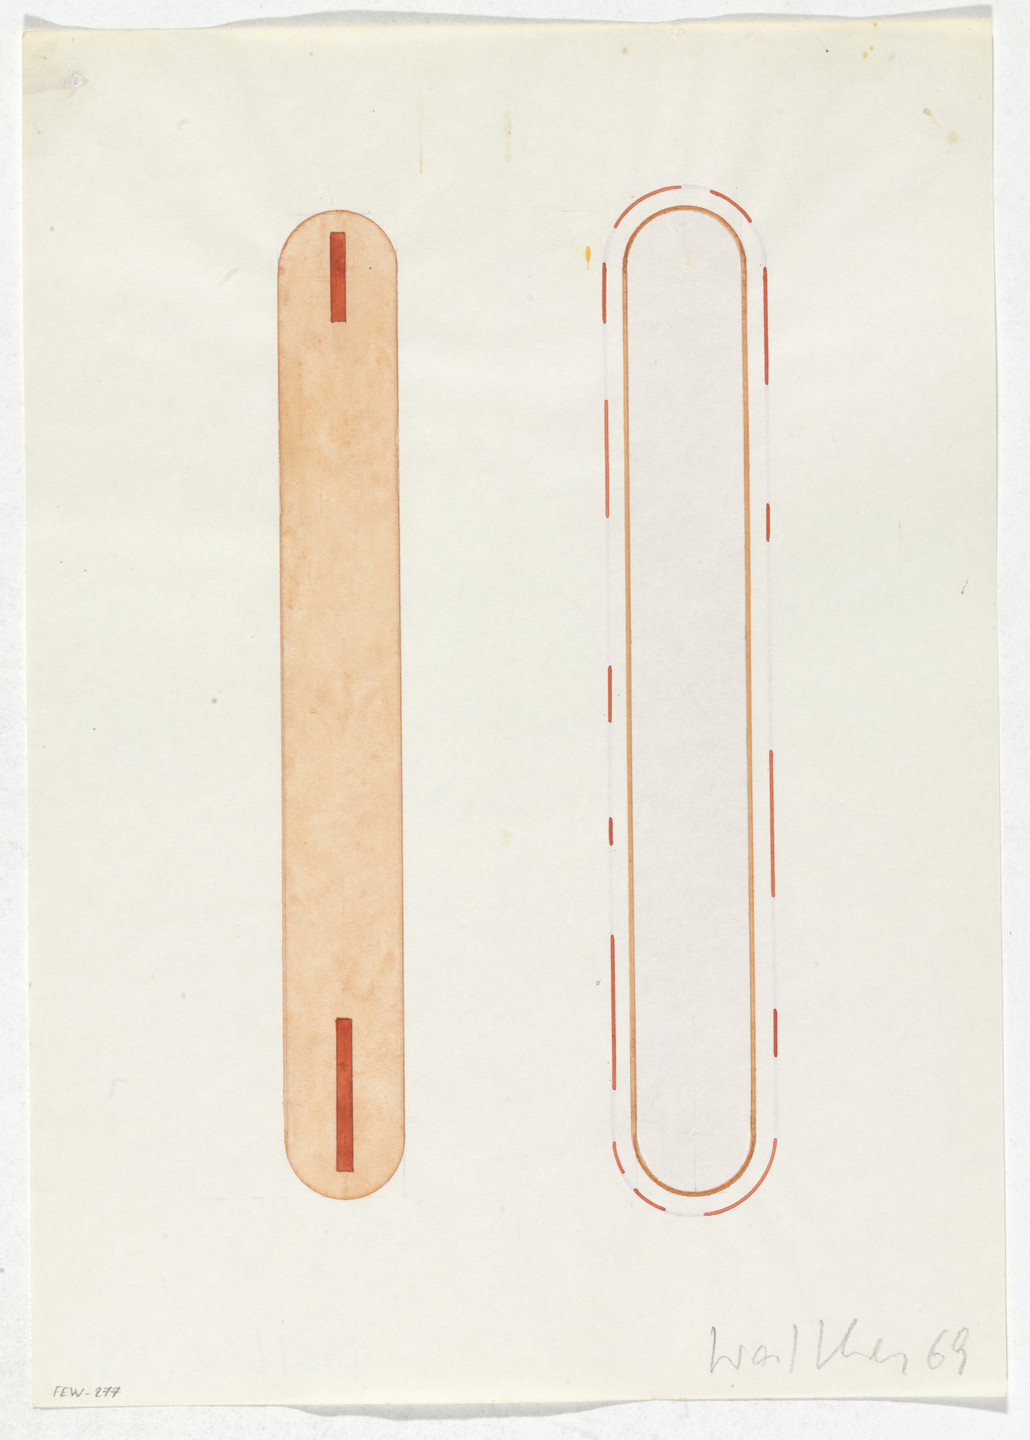 Franz Erhard Walther. Work Drawing: Body Weights. 1969